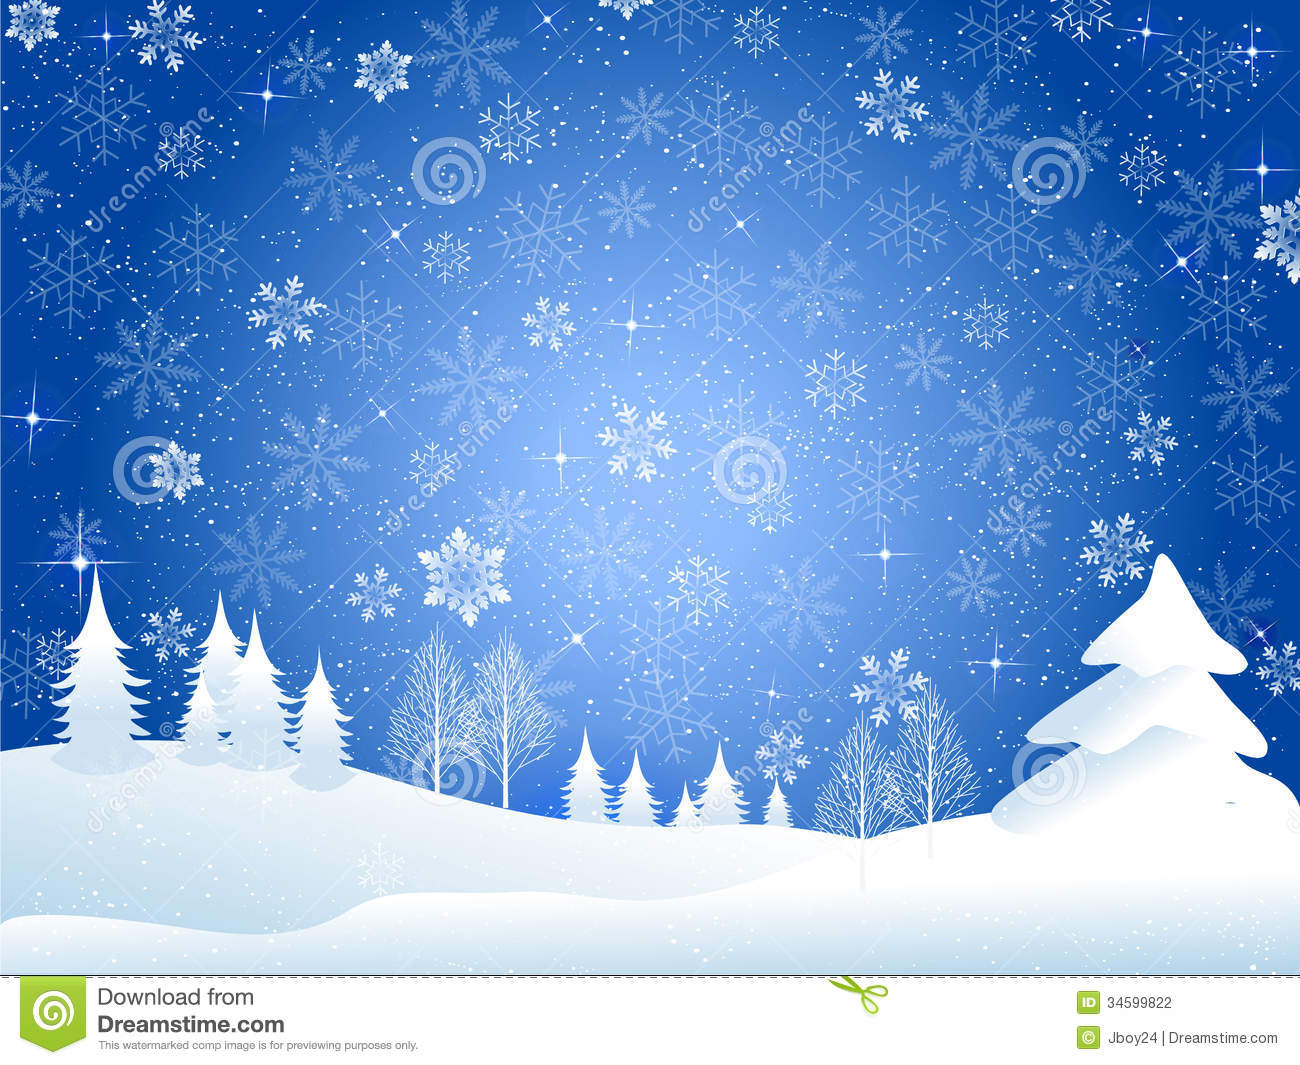 snow christmas background stock illustration illustration of rh dreamstime com snow background clipart free snow clipart background